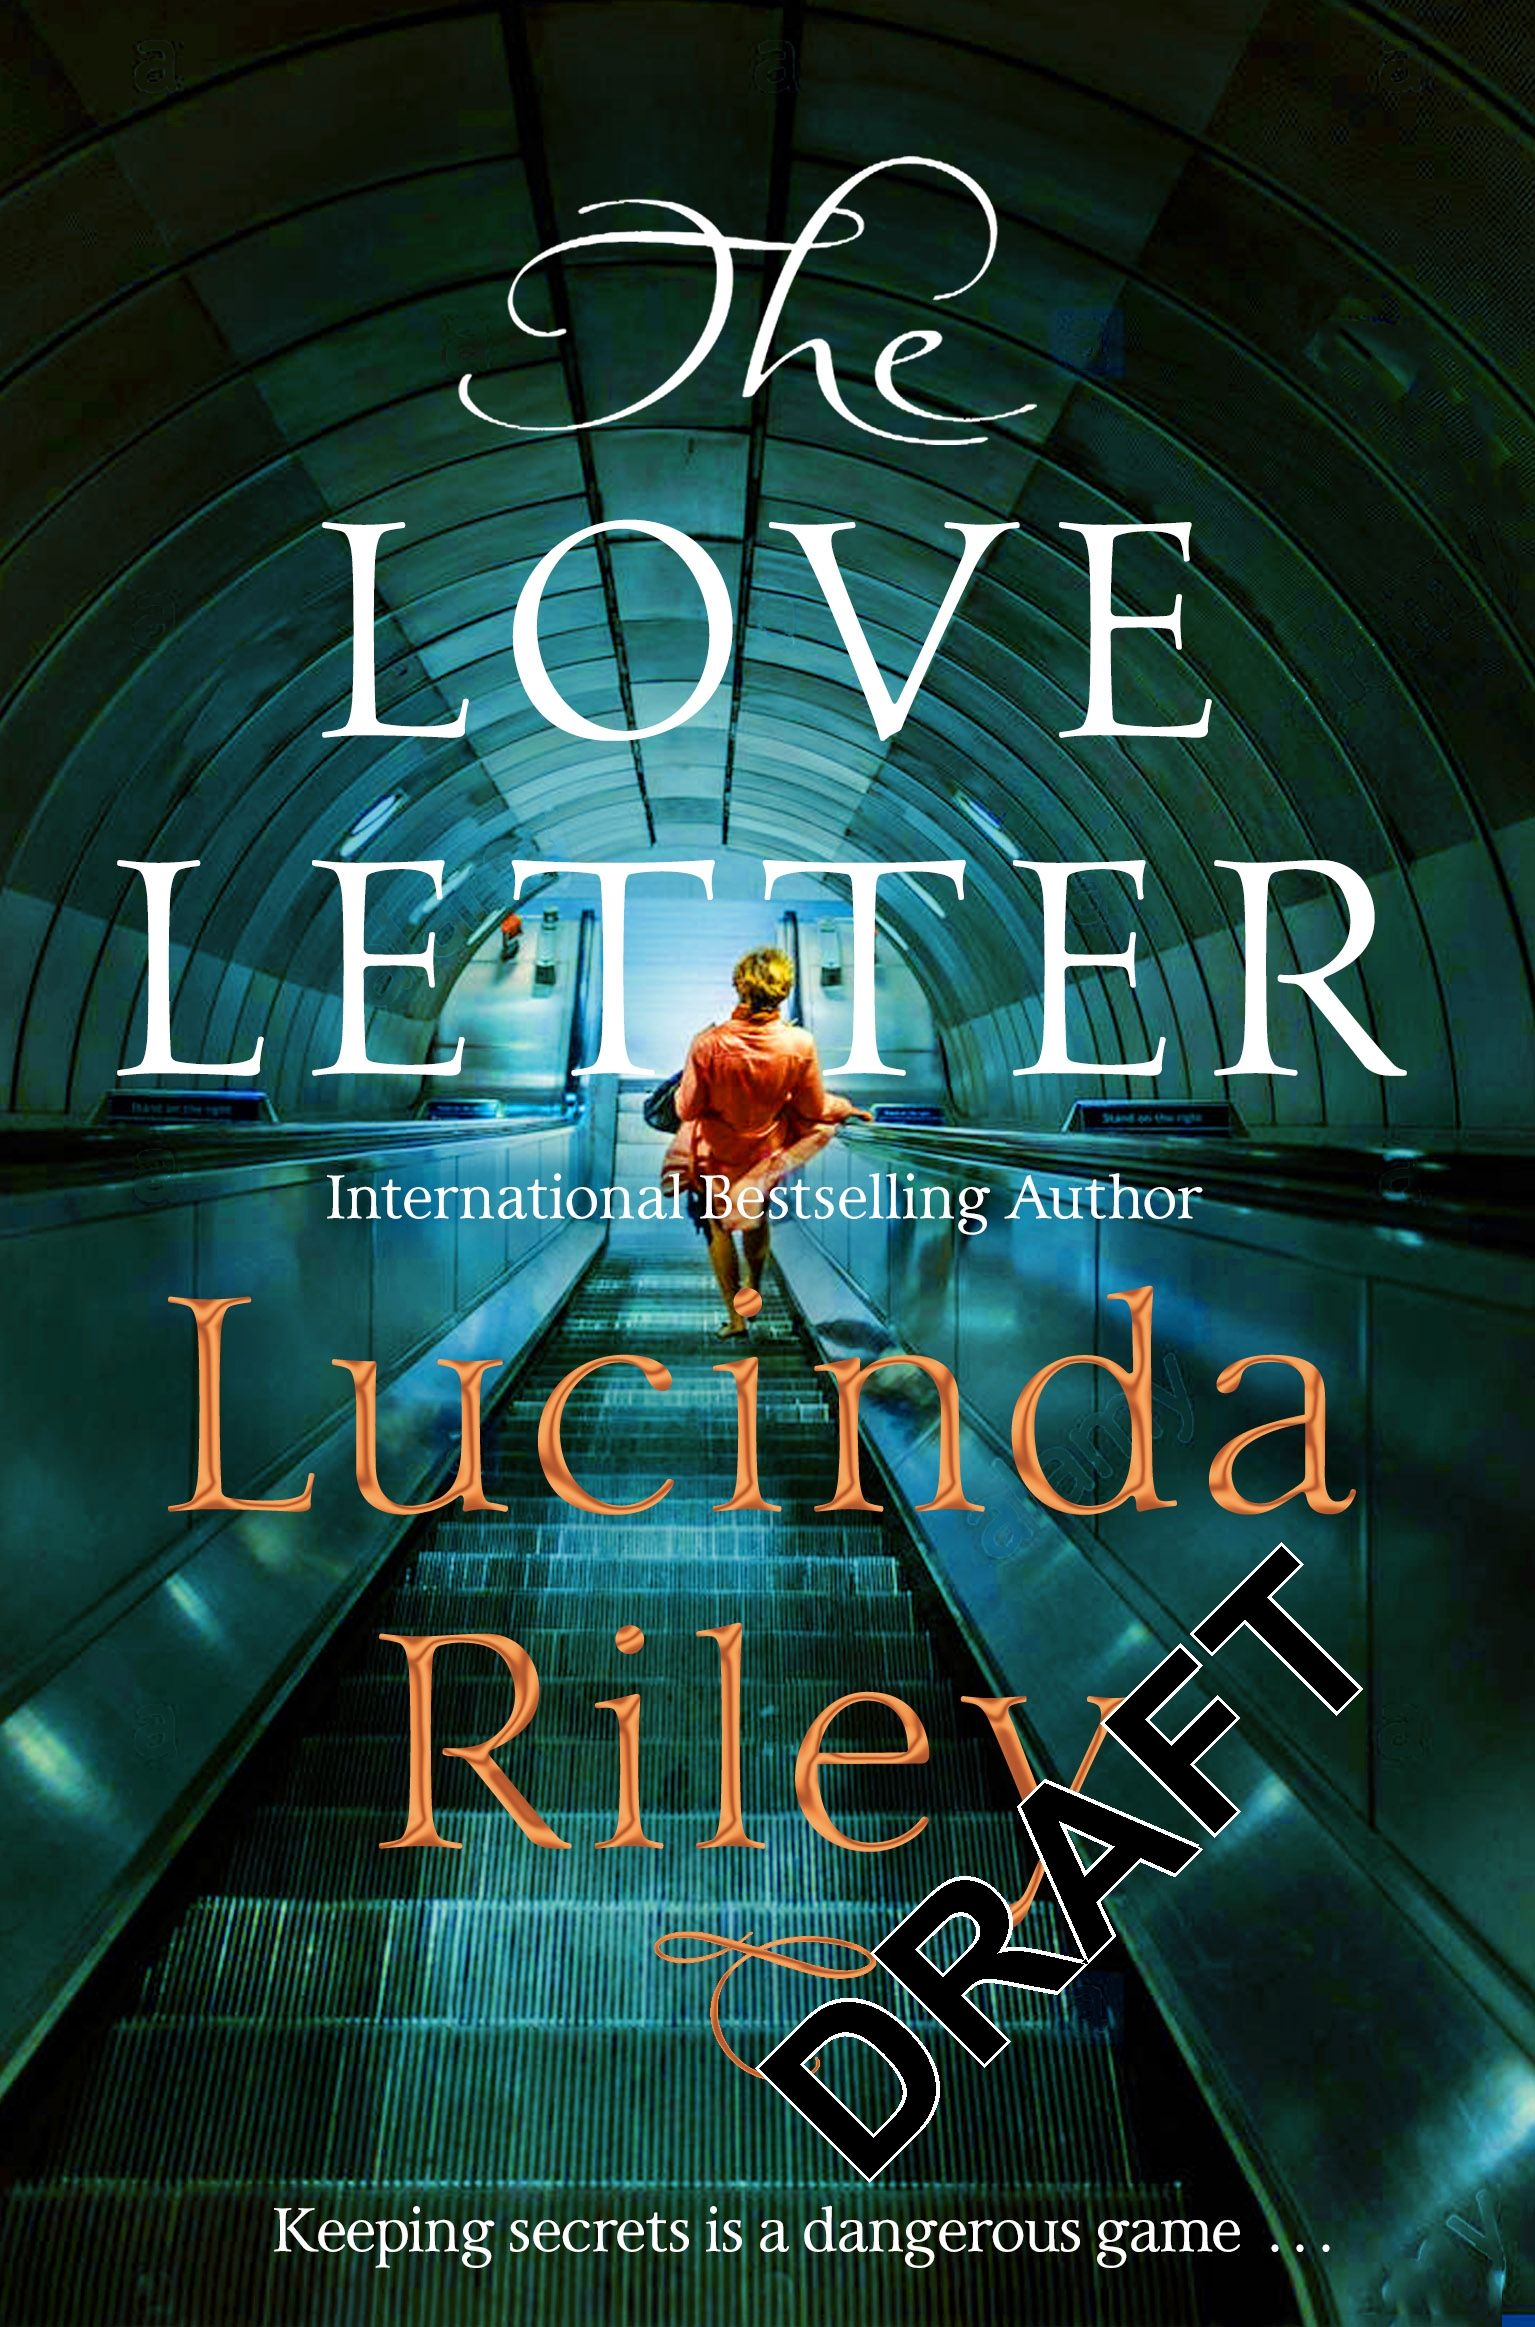 Free advance reading copies of lucinda rileys upcoming book the jellybooks offers readers free advance reading copies and complimentary ebooks in exchange for their reading data book candy for readers data candy for fandeluxe Choice Image